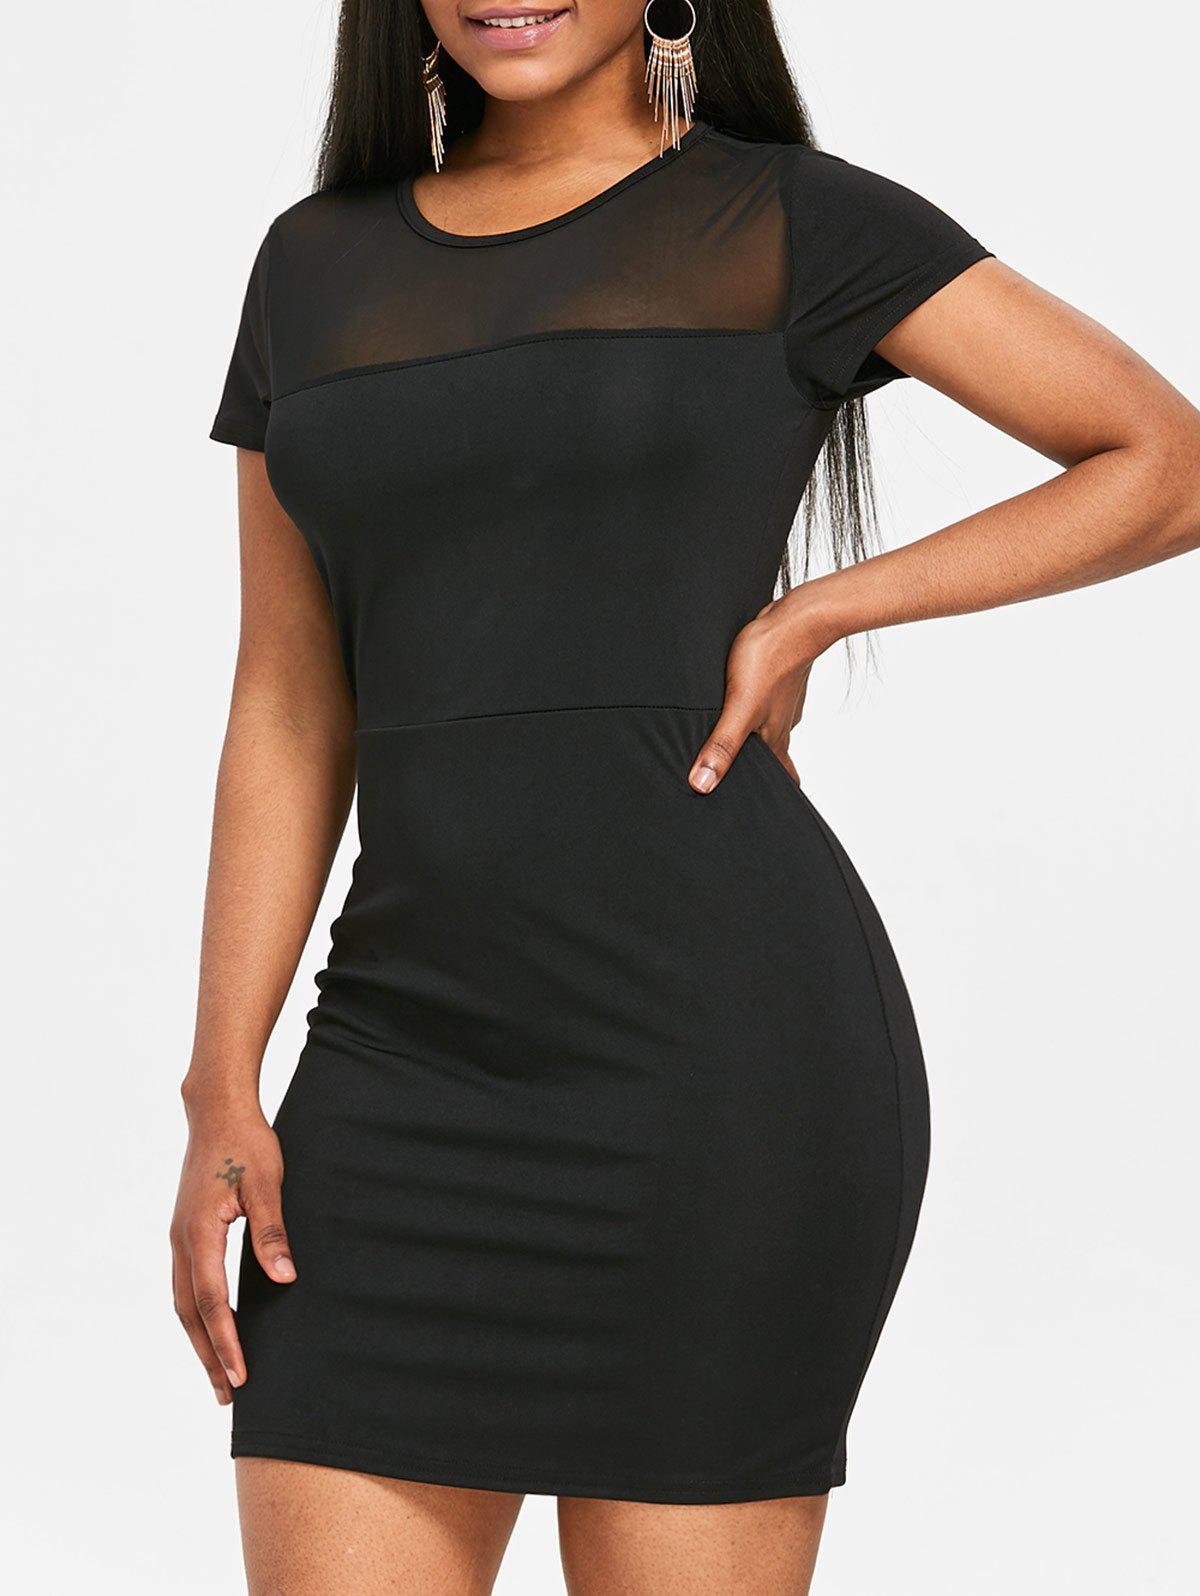 Mesh Panel See Through Bodycon Dress - BLACK M